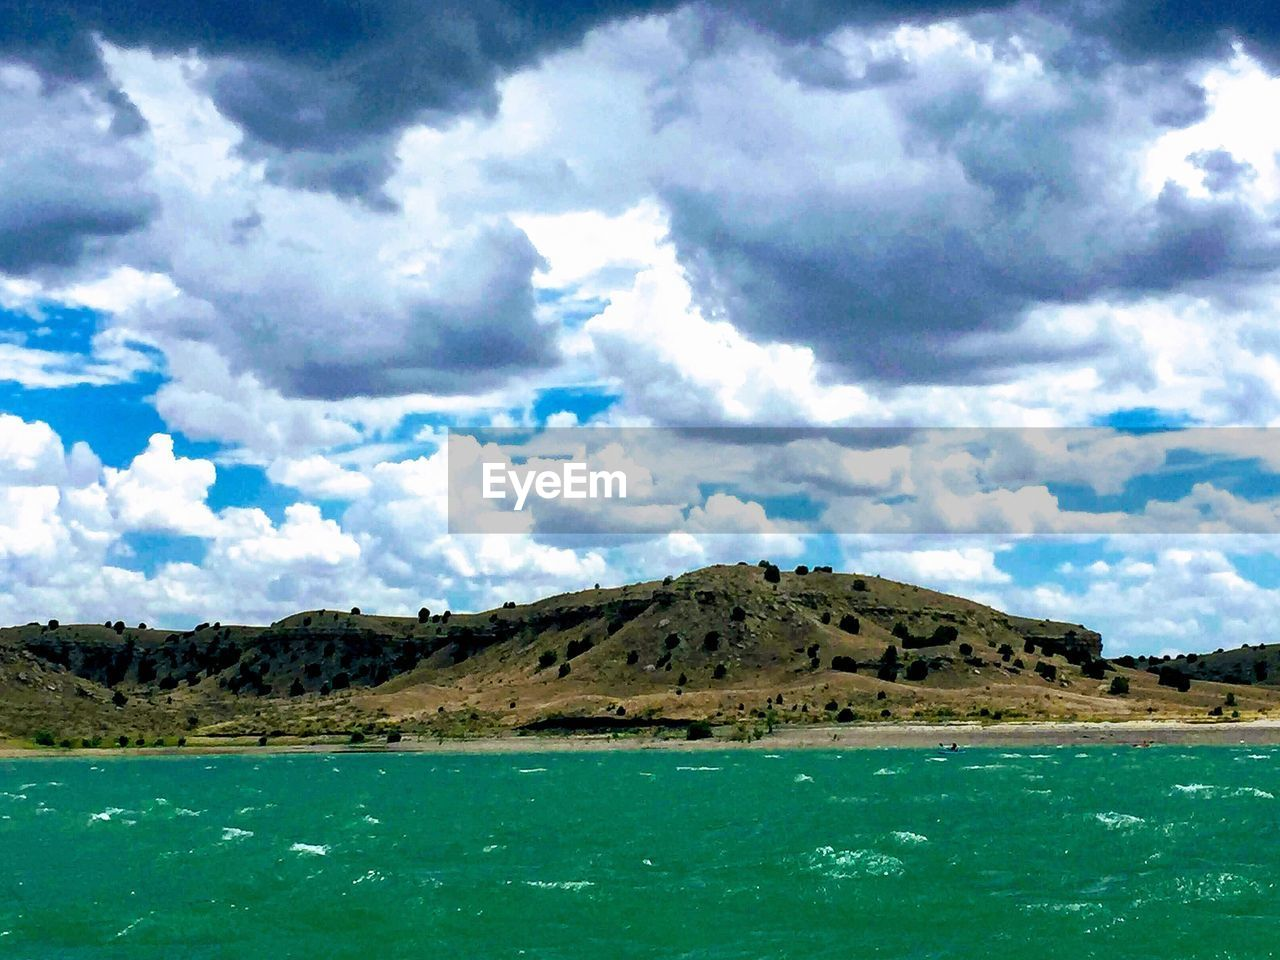 cloud - sky, sky, water, scenics - nature, tranquil scene, beauty in nature, tranquility, mountain, day, nature, no people, waterfront, sea, land, non-urban scene, outdoors, idyllic, environment, beach, turquoise colored